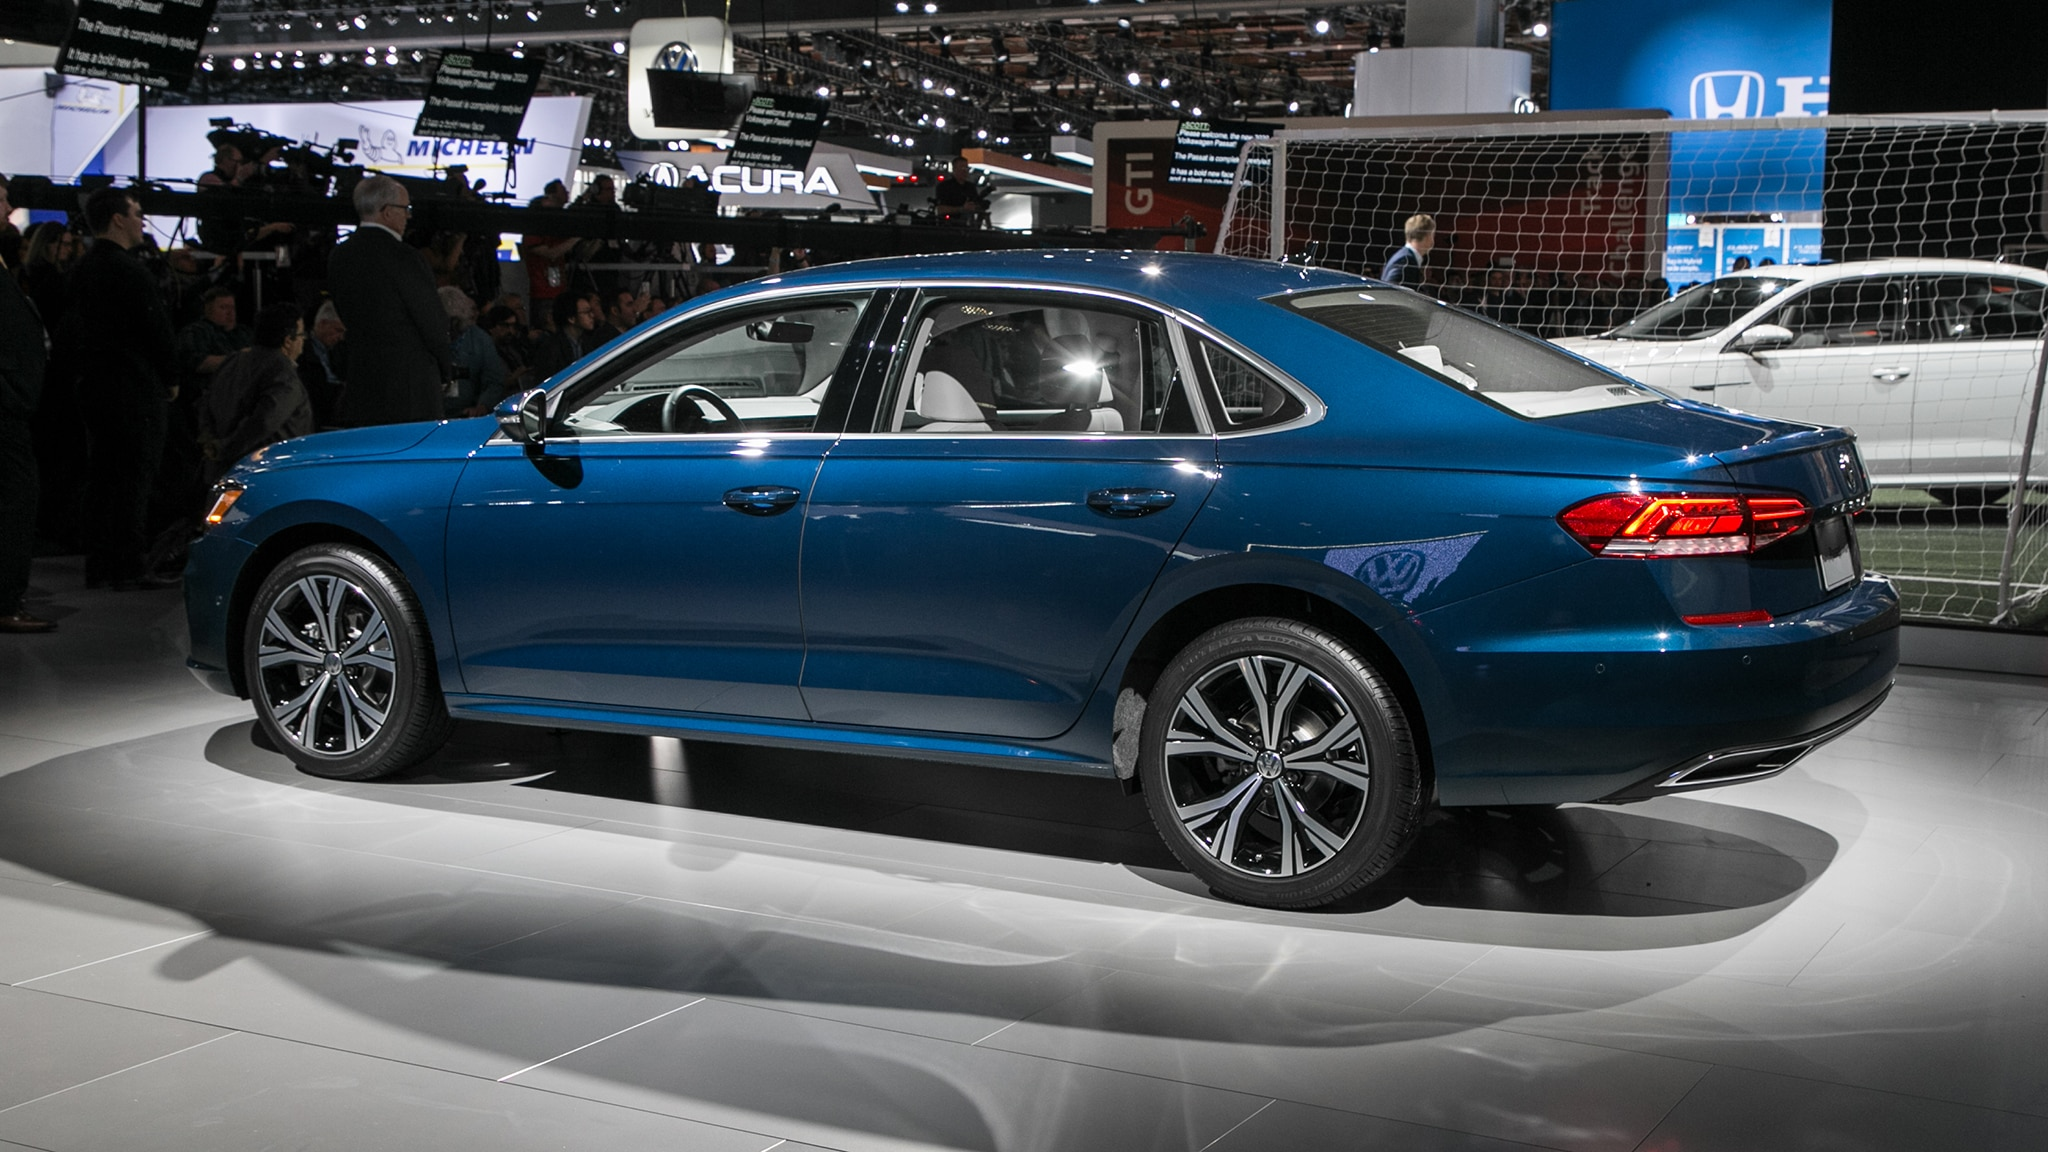 40 New 2020 Vw Passat Wallpaper